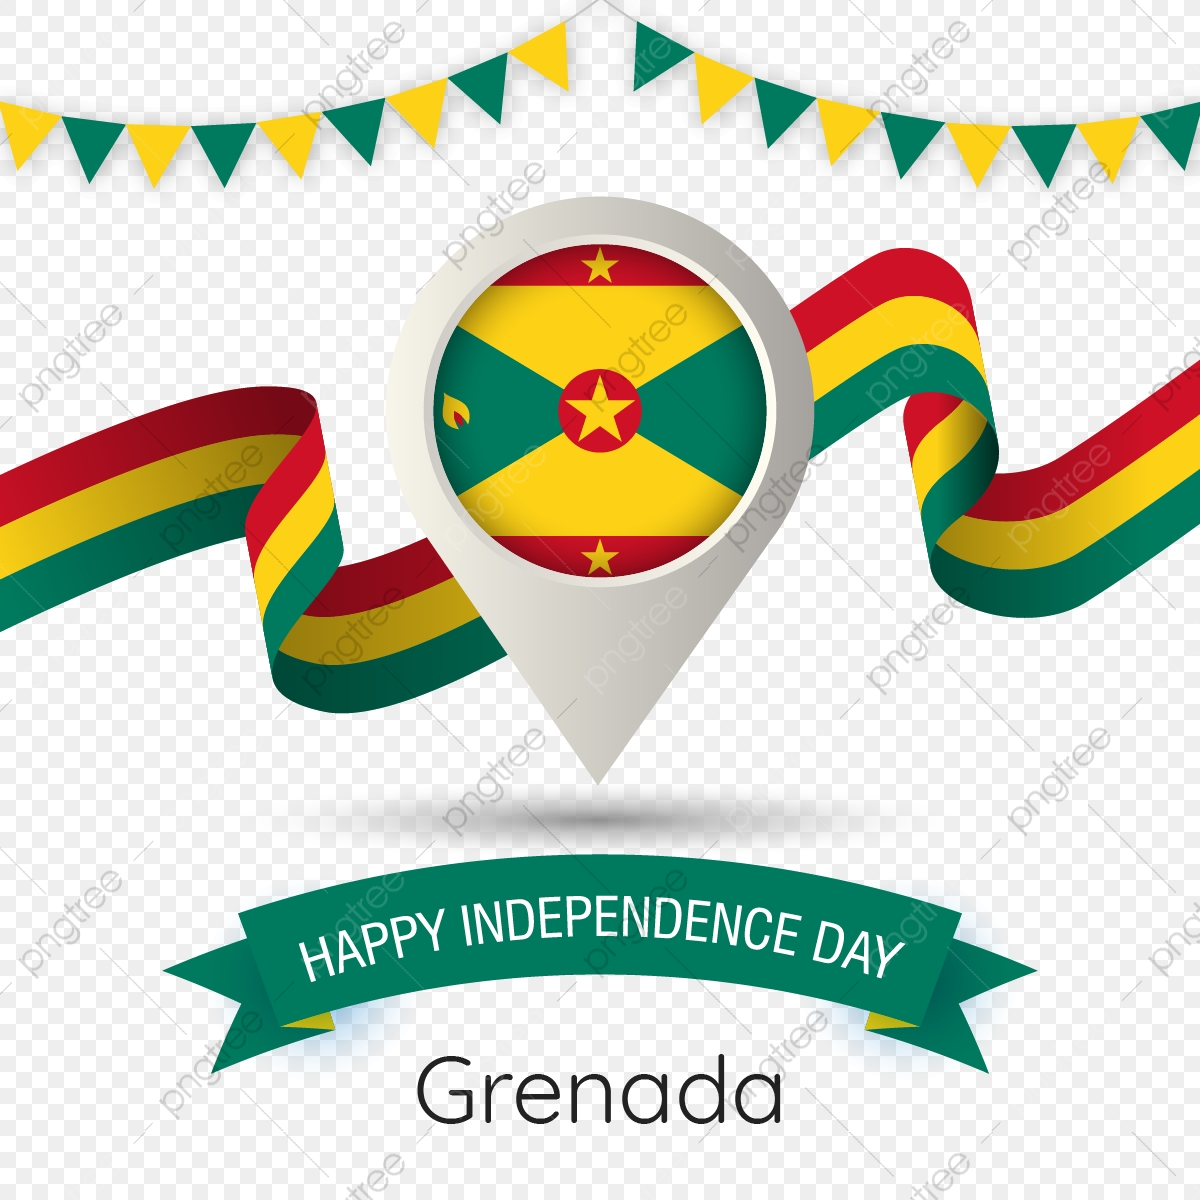 Grenada Independence Day With Stylized Country Flag Pin Illustration Grenada Happy Independence Day Flag Png And Vector With Transparent Background For Free Download